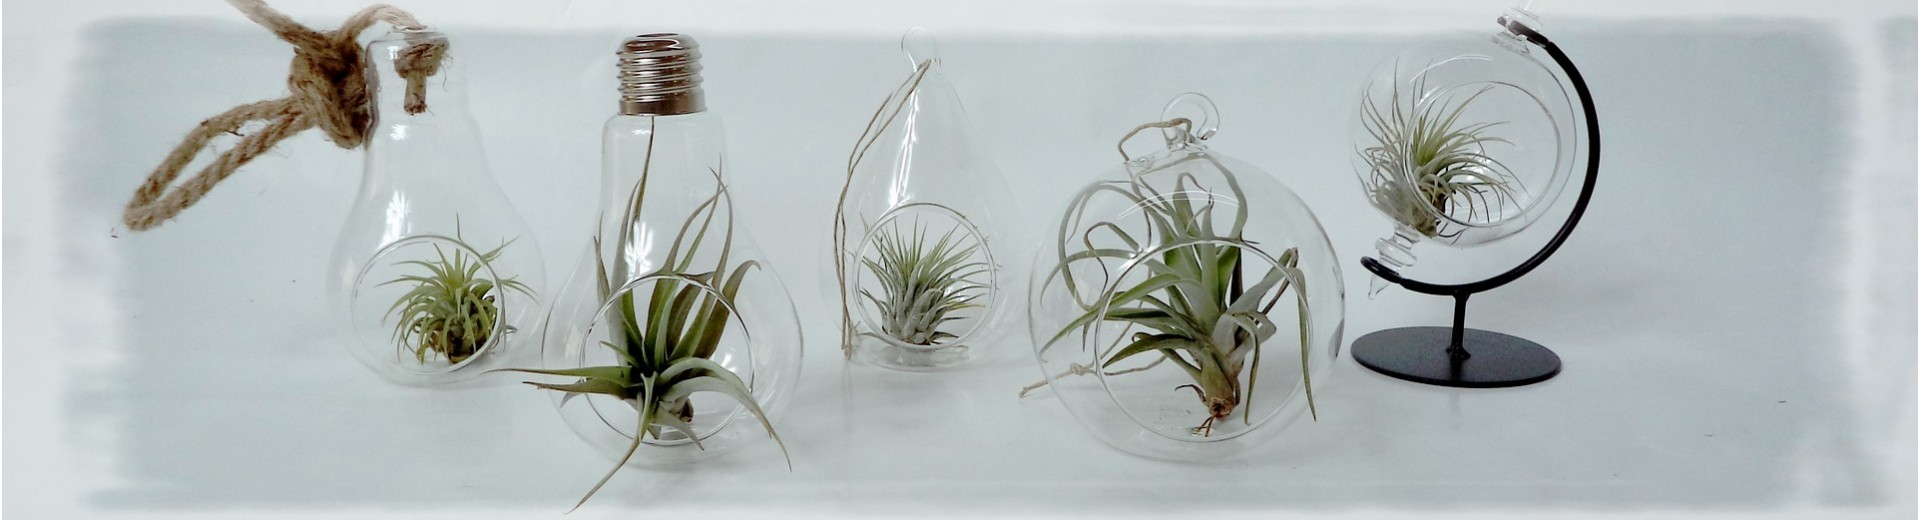 Tillandsias e Secret Of Desert